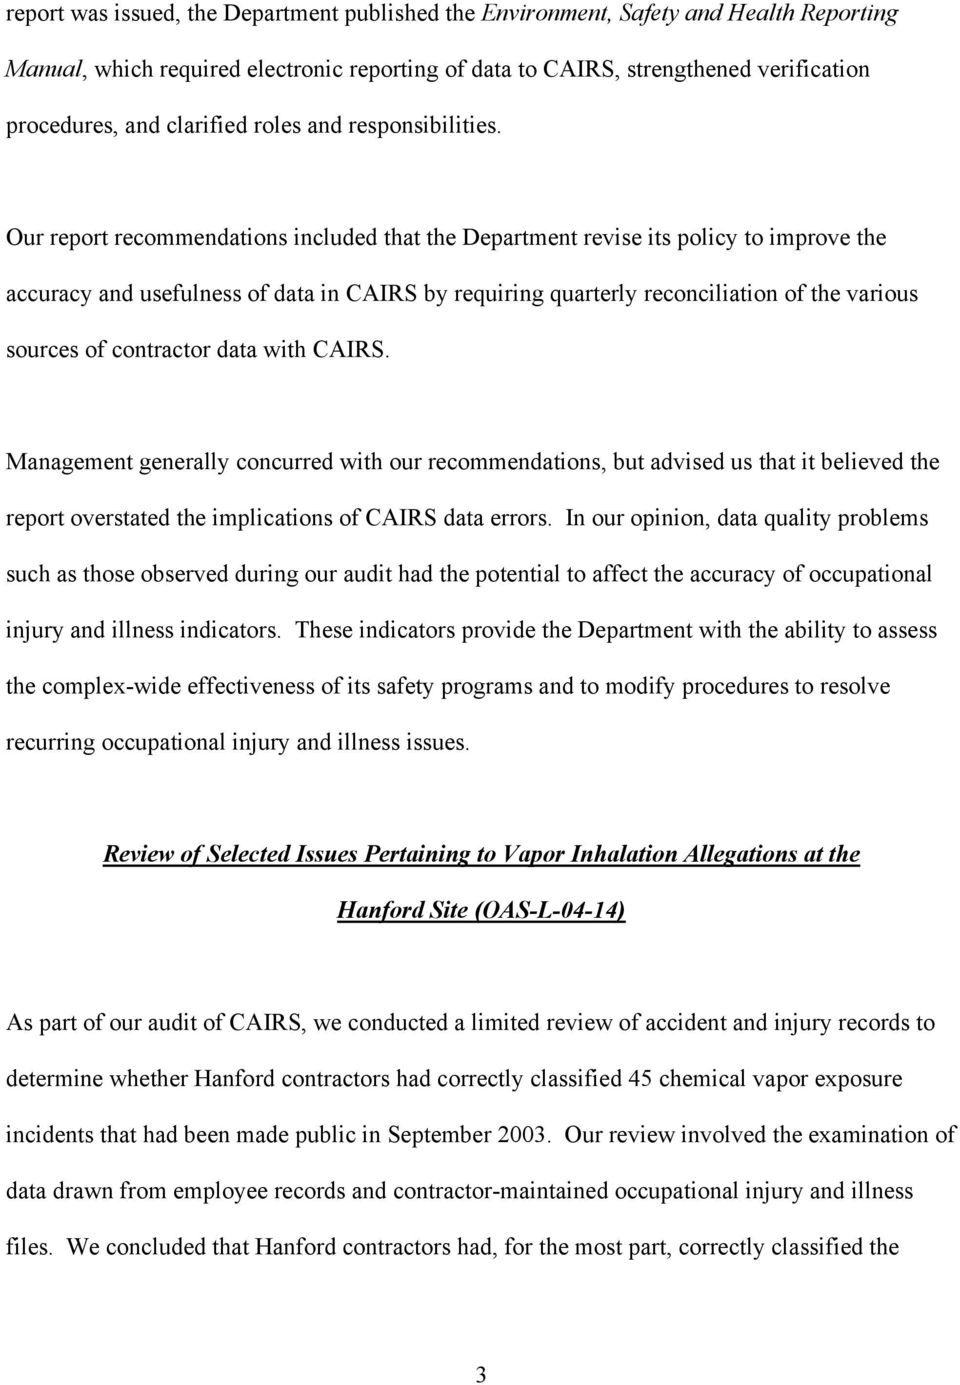 Our report recommendations included that the Department revise its policy to improve the accuracy and usefulness of data in CAIRS by requiring quarterly reconciliation of the various sources of